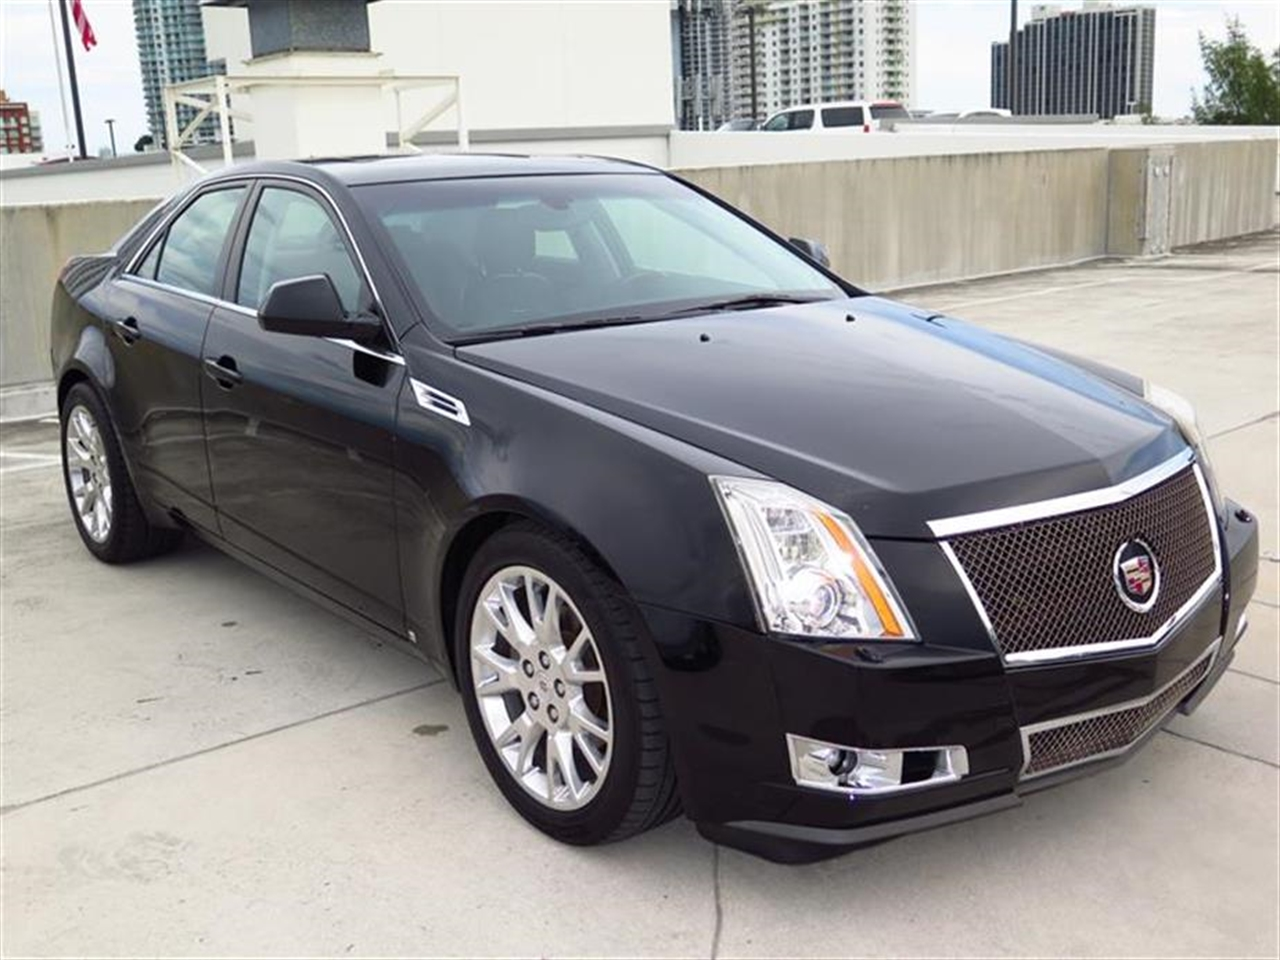 2008 CADILLAC CTS 4dr Sdn RWD w1SB 76076 miles Armrest front center rear center with dual cup h